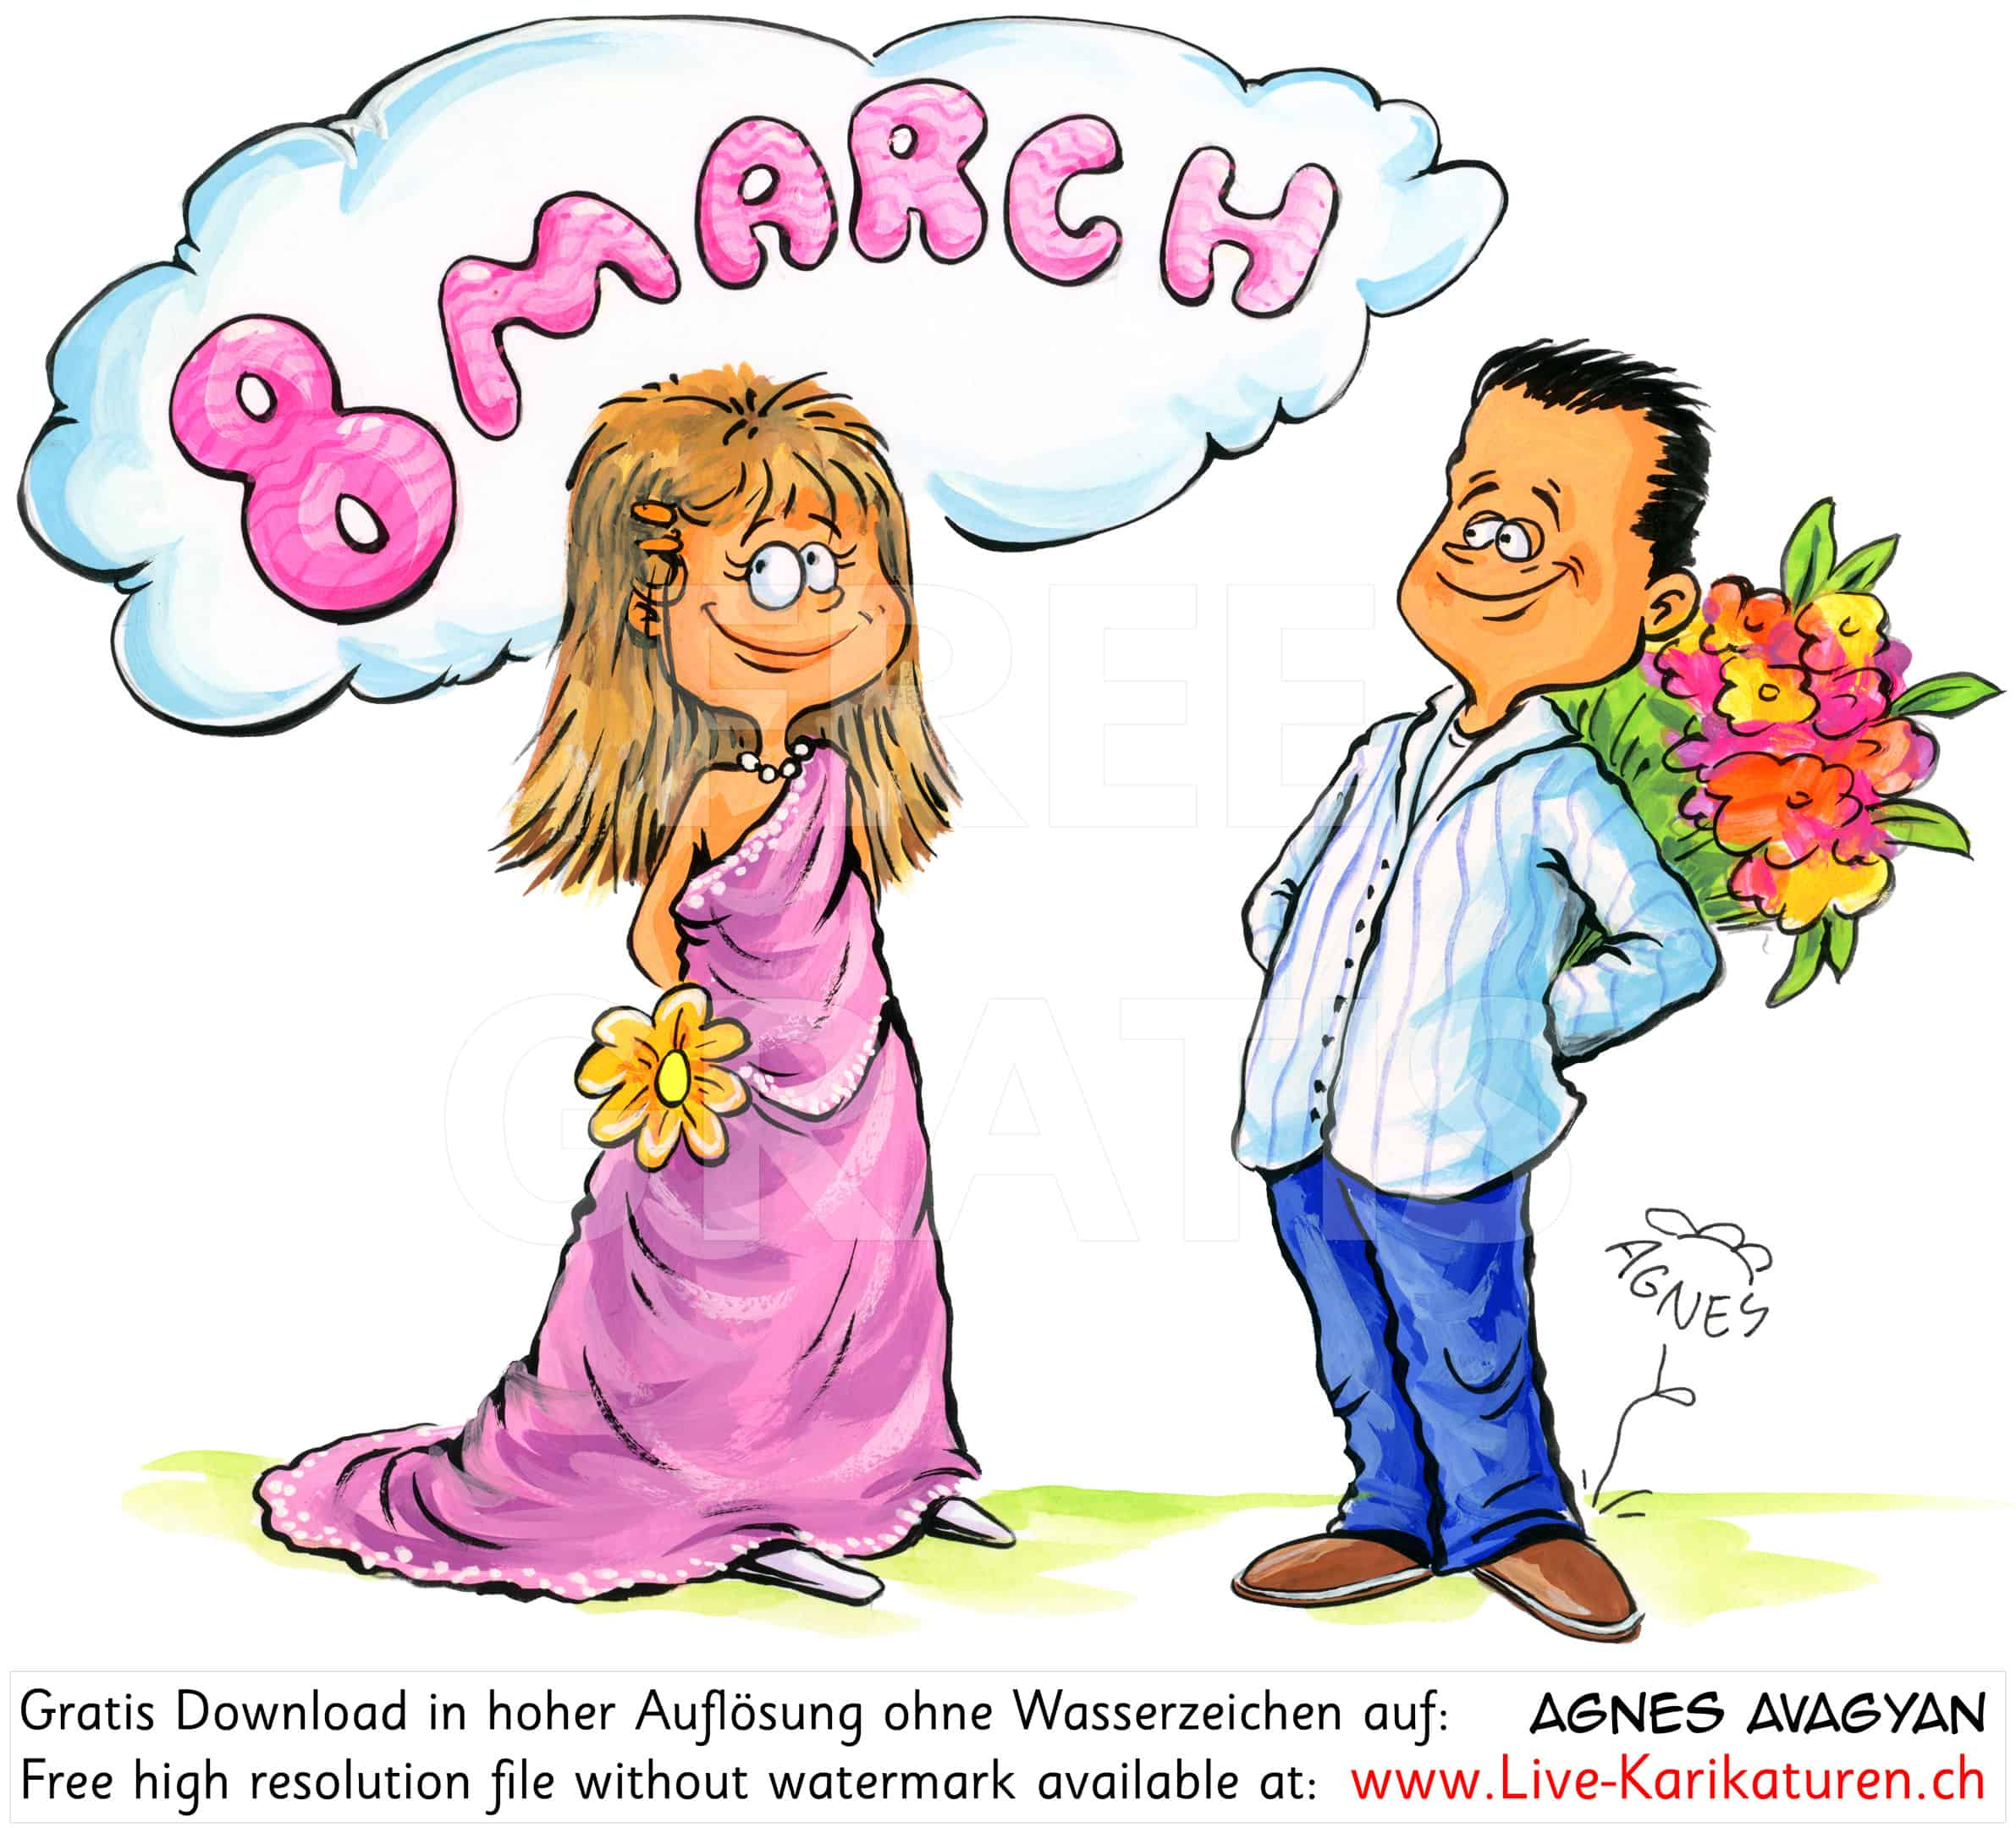 Frauentag Weltfrauentag 8. Maerz 8. March Feier Feiertag Frau Blumen Geschenk herzig schoenes Kleid Mann Agnes Karikaturen gratis free Clipart Comic Cartoon Zeichnung Illustration transparent PNG